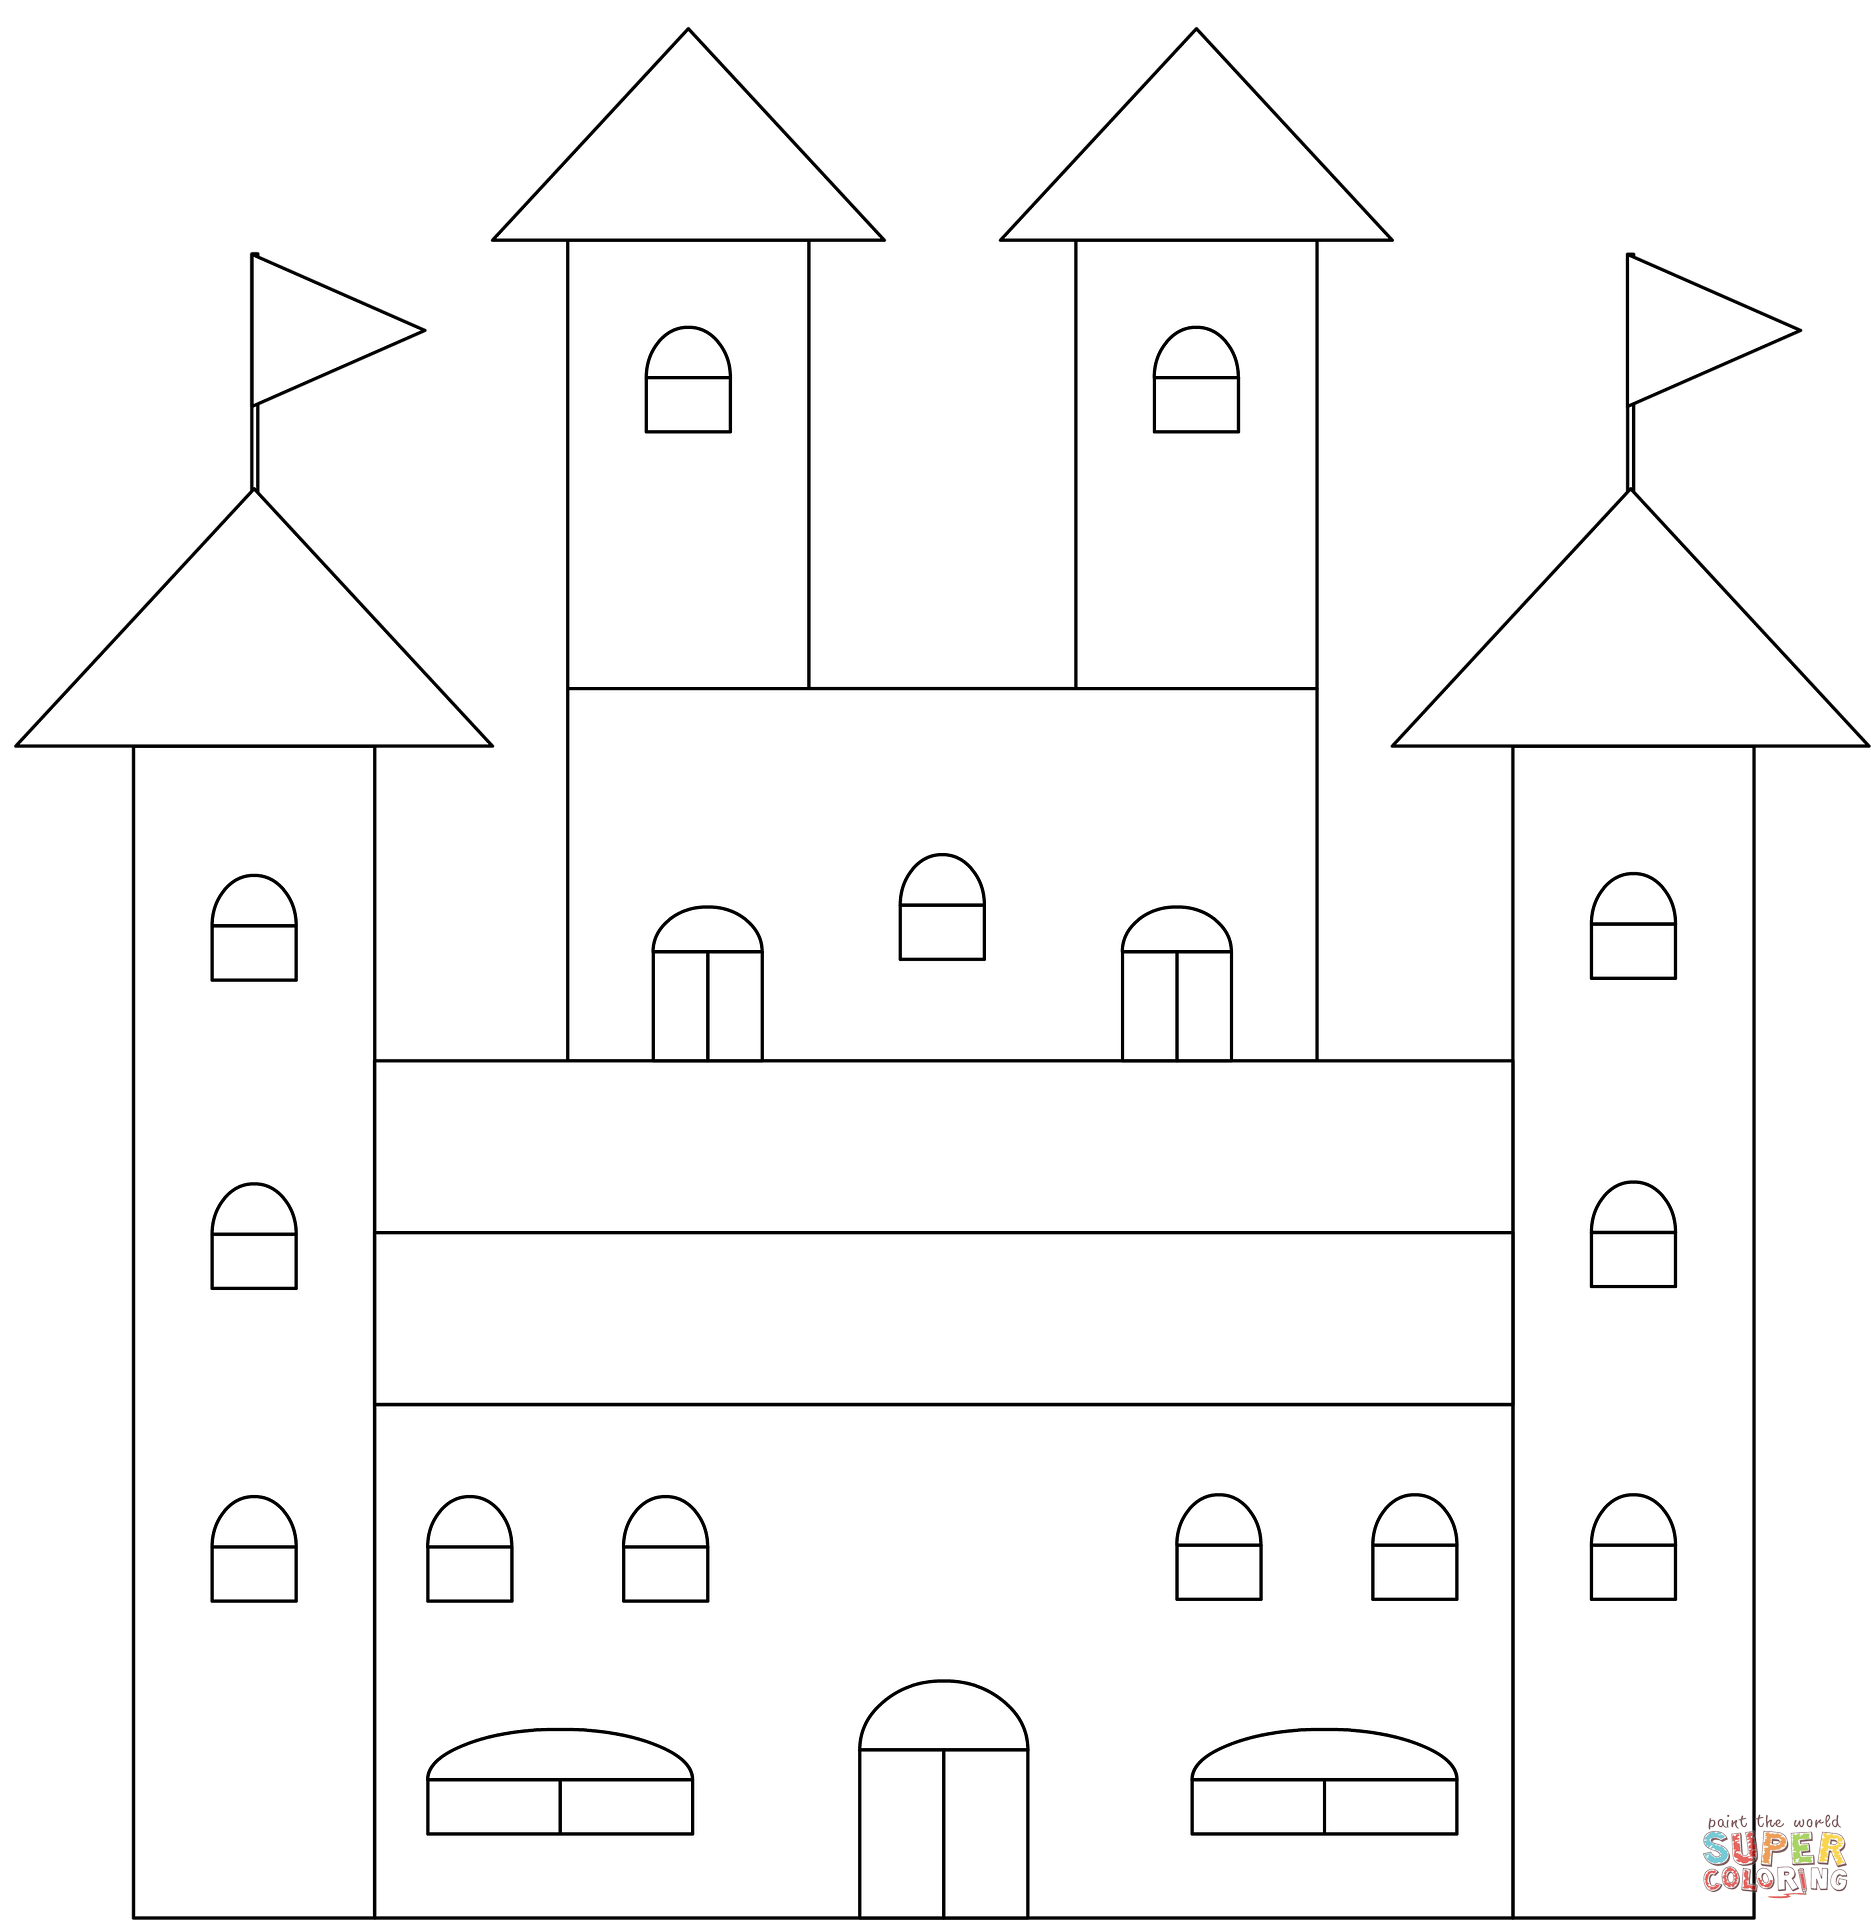 Clipart castle ireland. Coloring page free printable